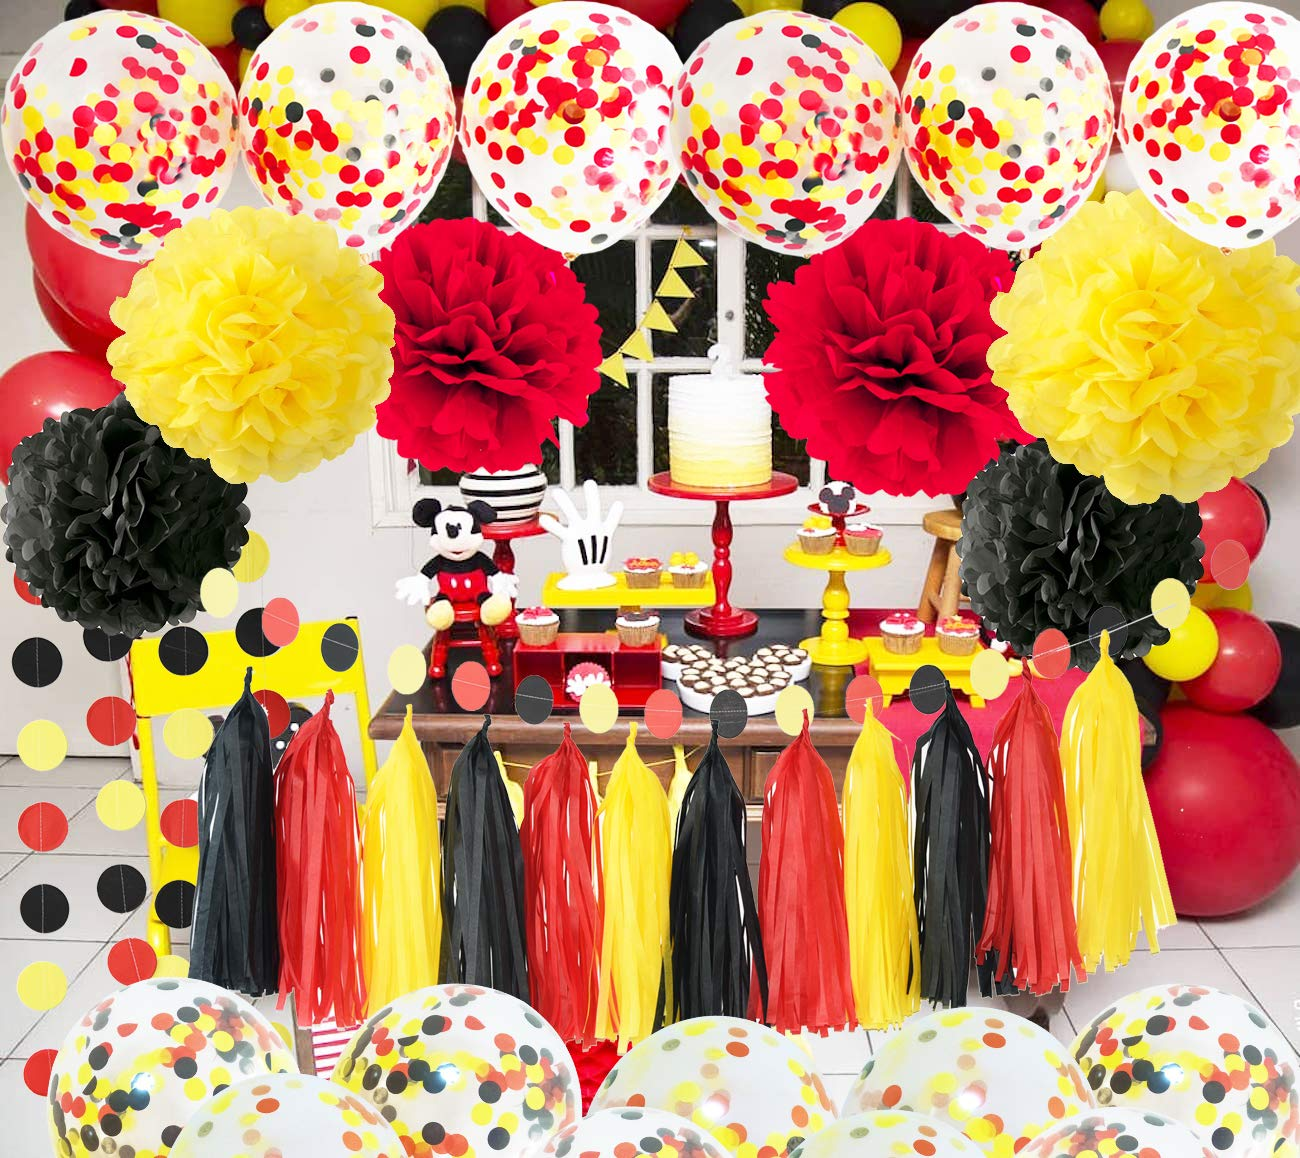 Mickey Mouse Birthday Decorations Mickey Mouse Color Party Supplies Yellow  Black Red Confetti Ballons Fire Truck Birthday Banner,Boy Birthday